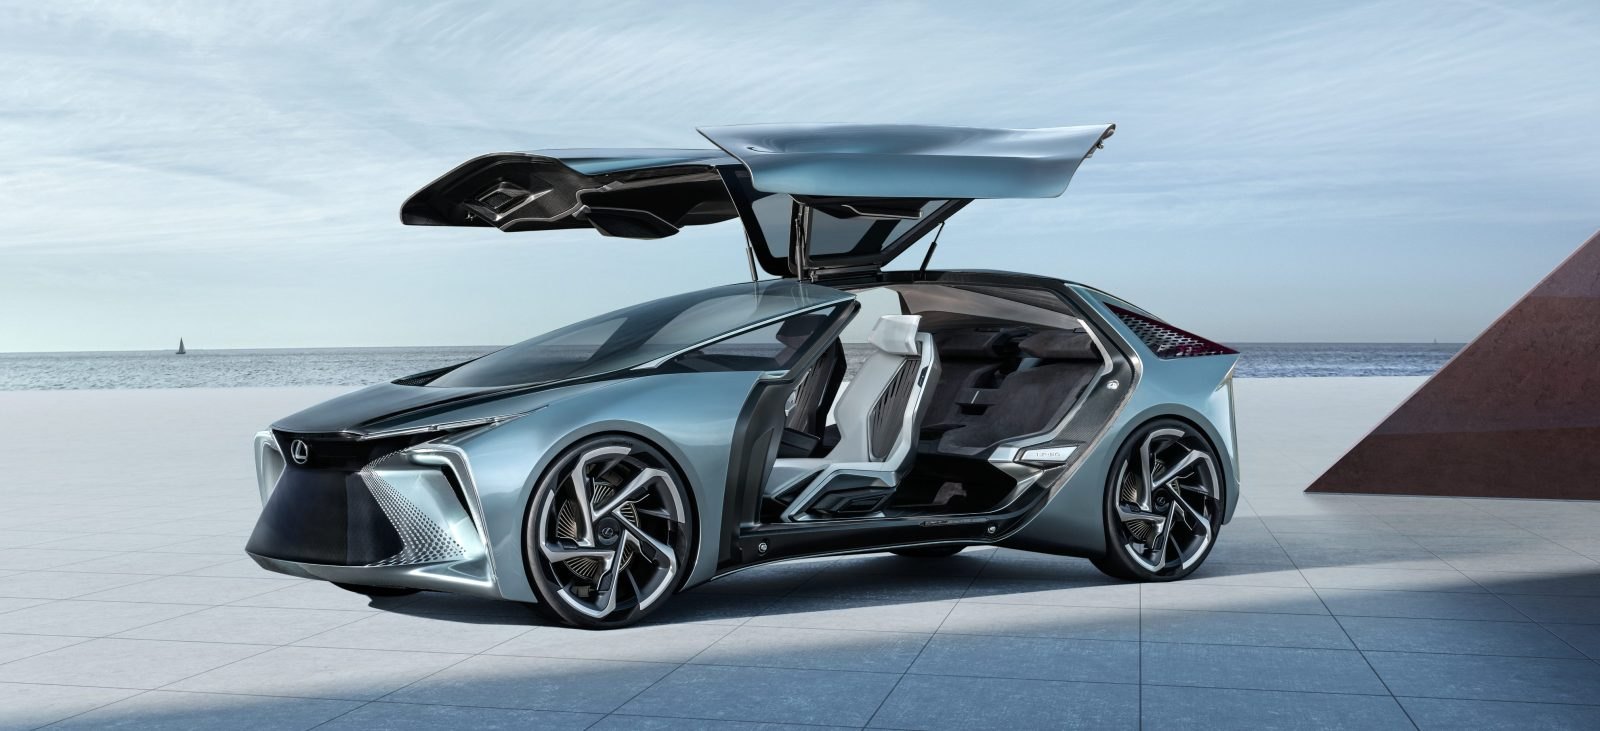 Lexus unveils crazy-looking electric concept with giant gull wings, announces first BEV